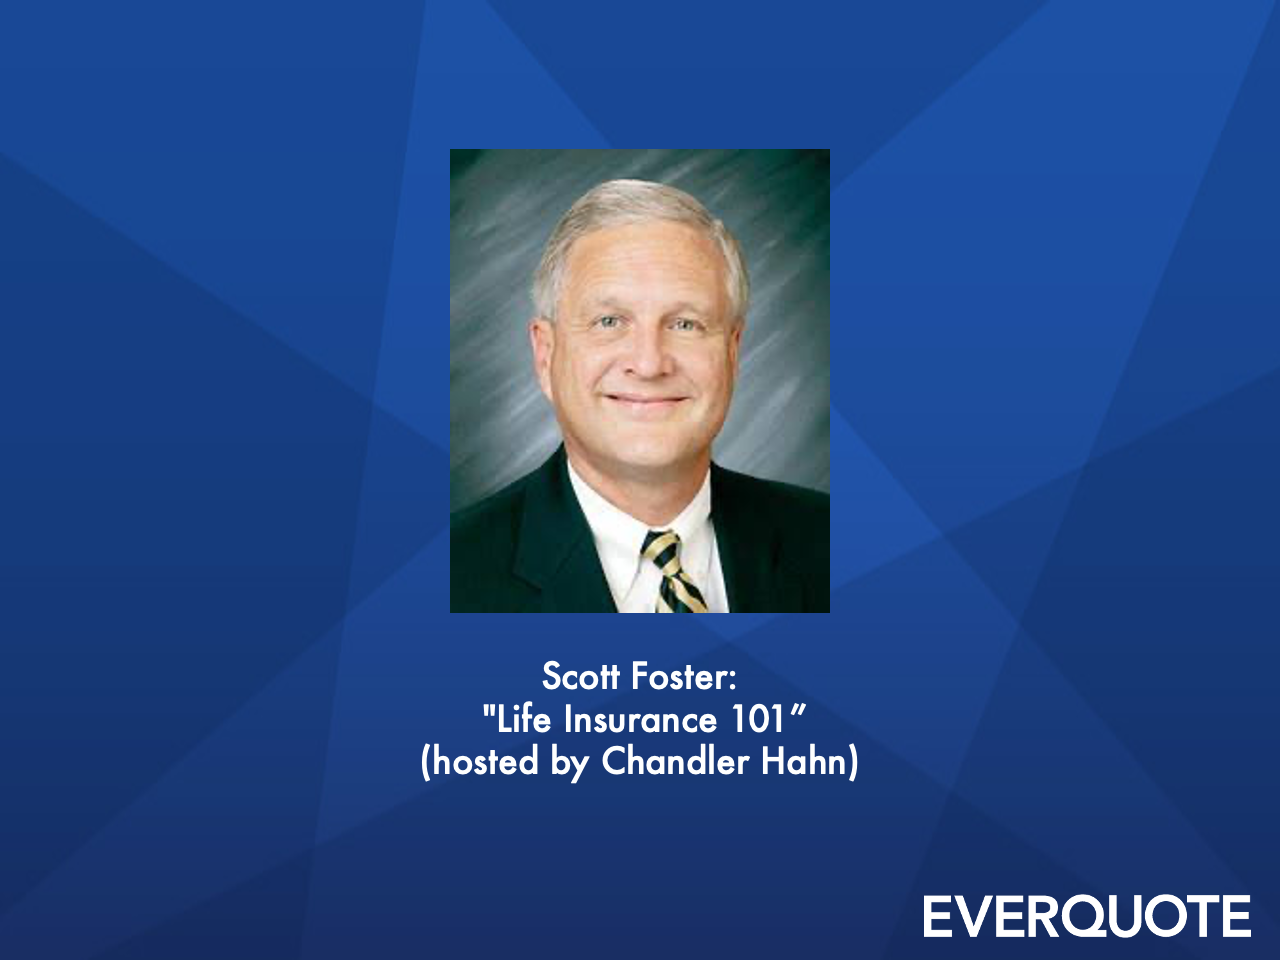 Life Insurance 101 with Scott Foster